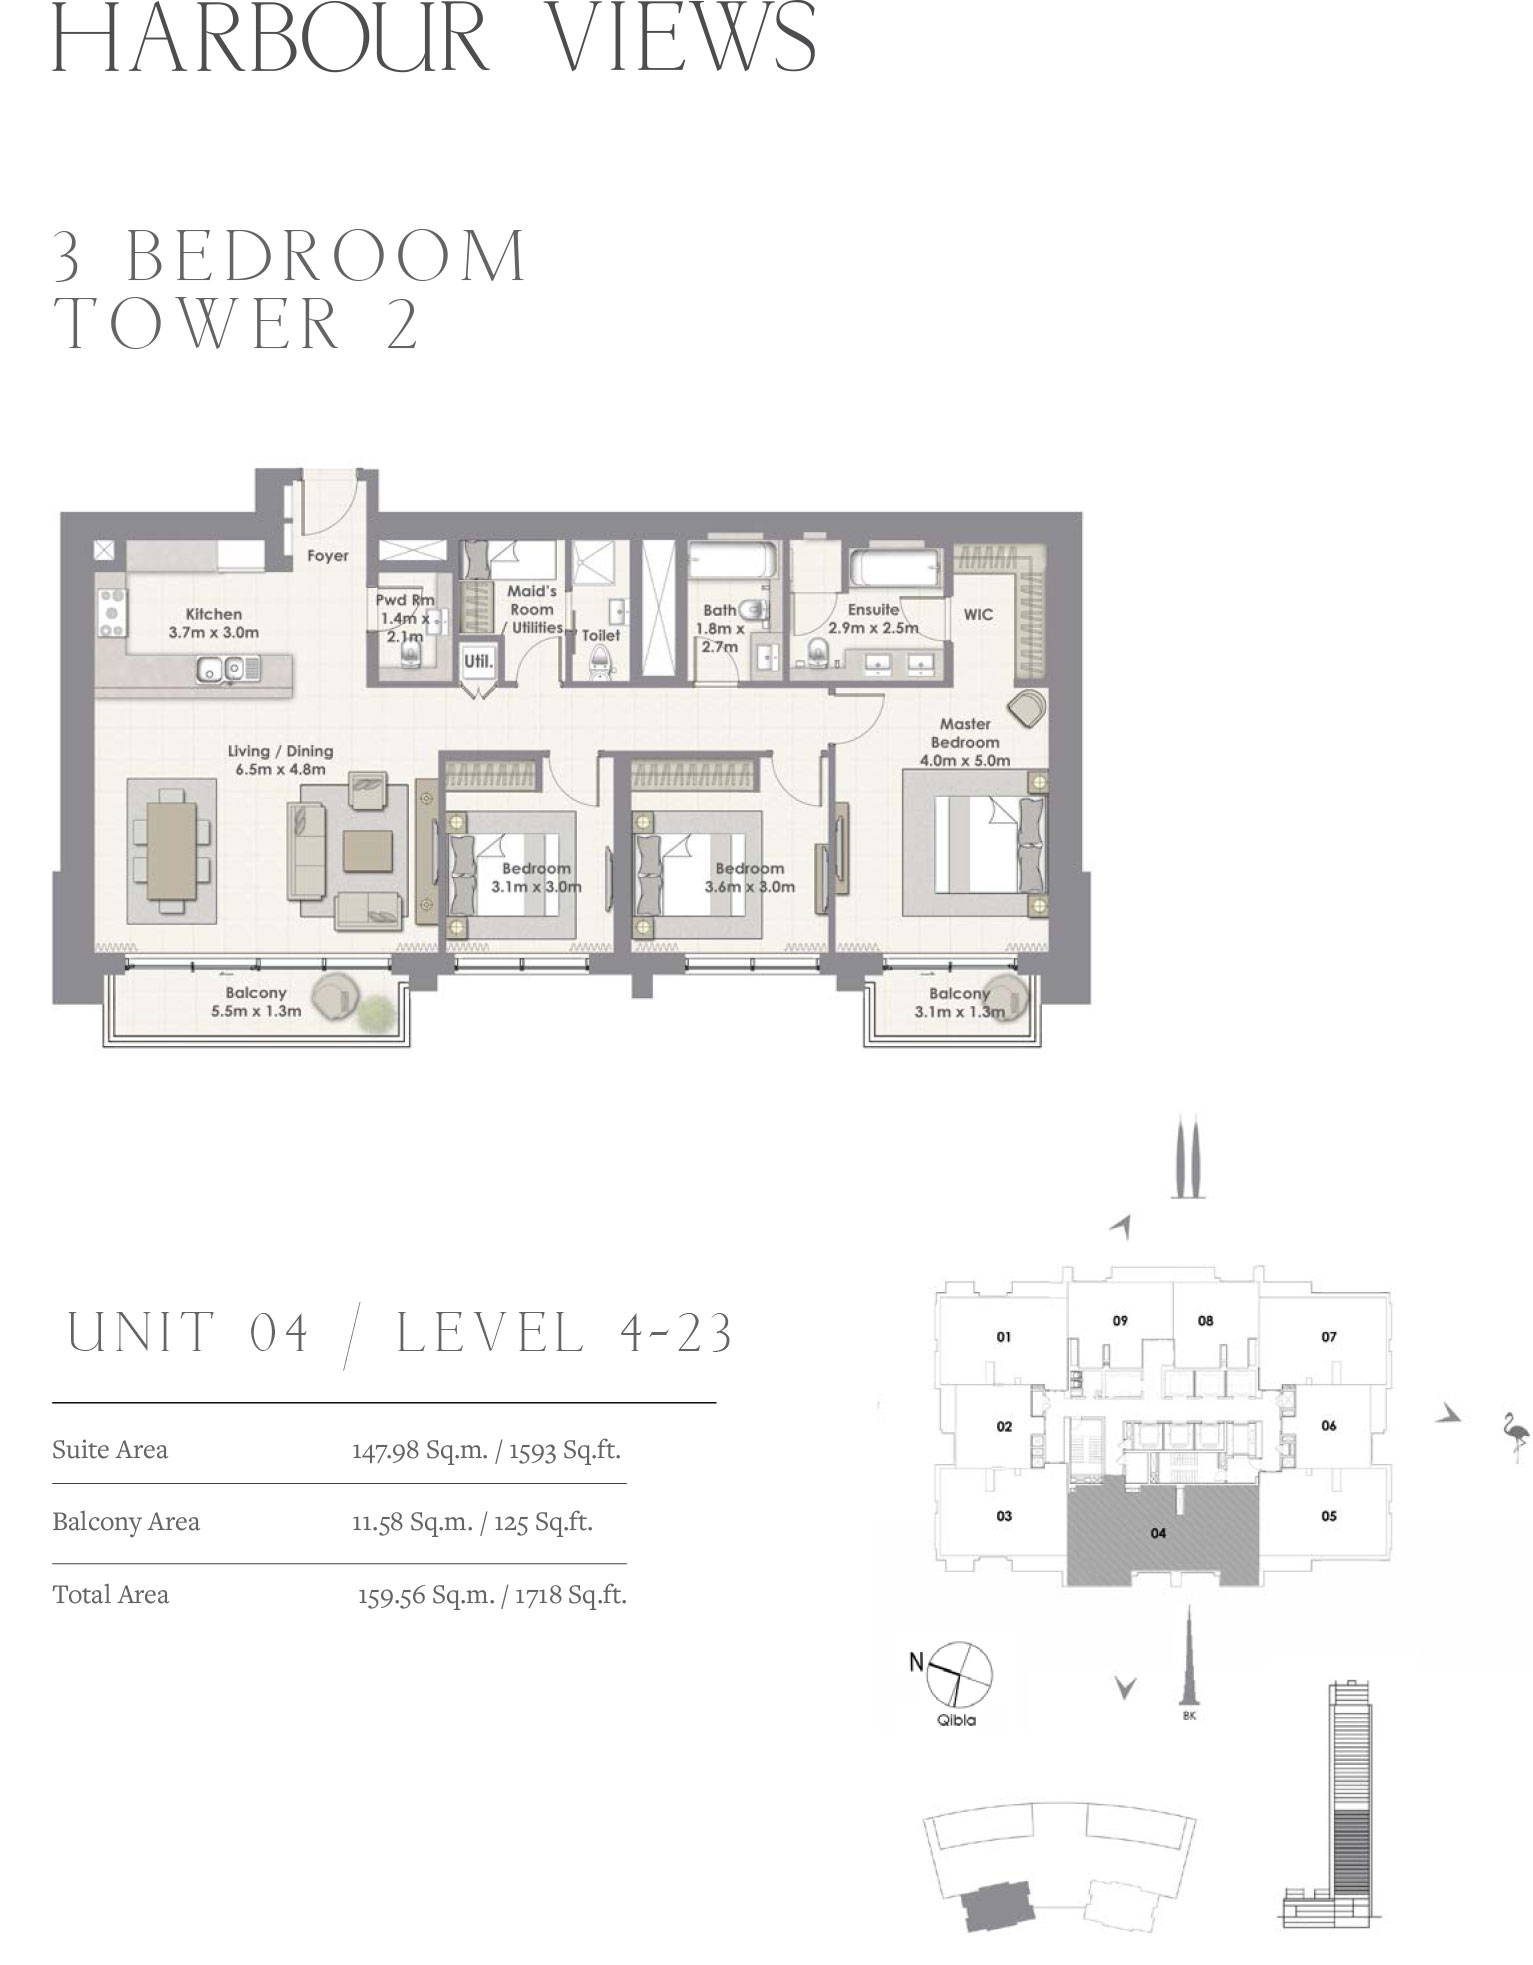 3 Bedroom Tower 2, Unit 04/Level 4-23